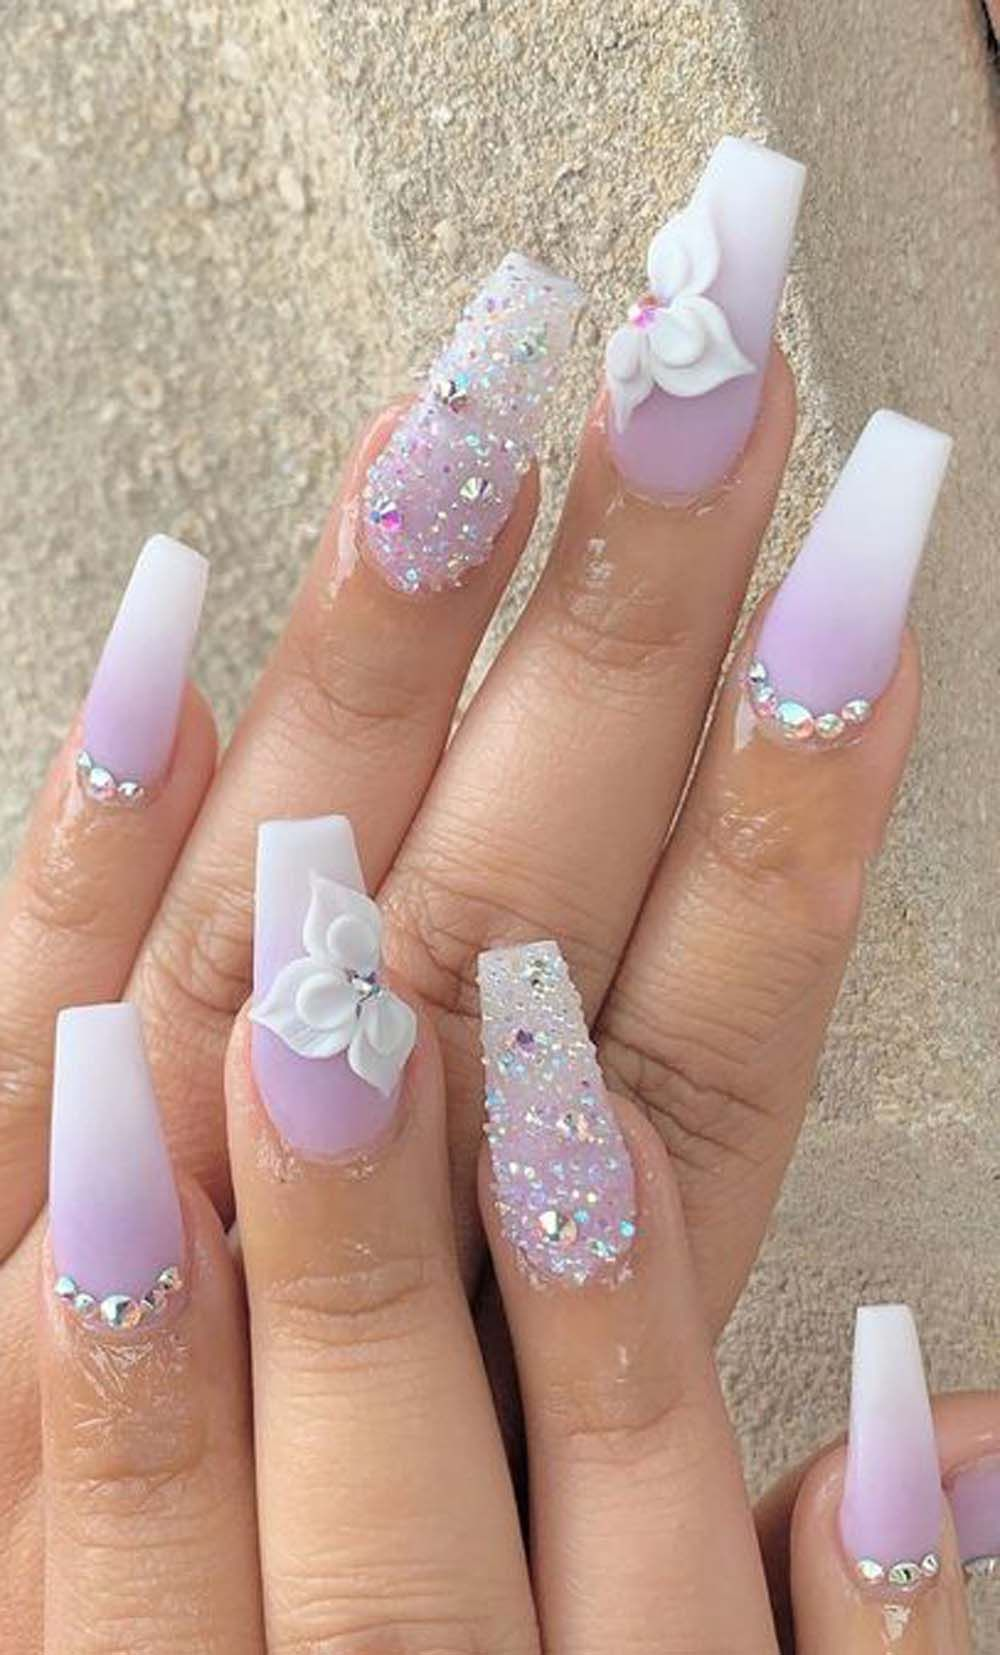 13 Fabulous Coffin Nail Designs With Gel For This Summer In 2020 Best Acrylic Nails 3d Flower Nails Wedding Nail Art Design